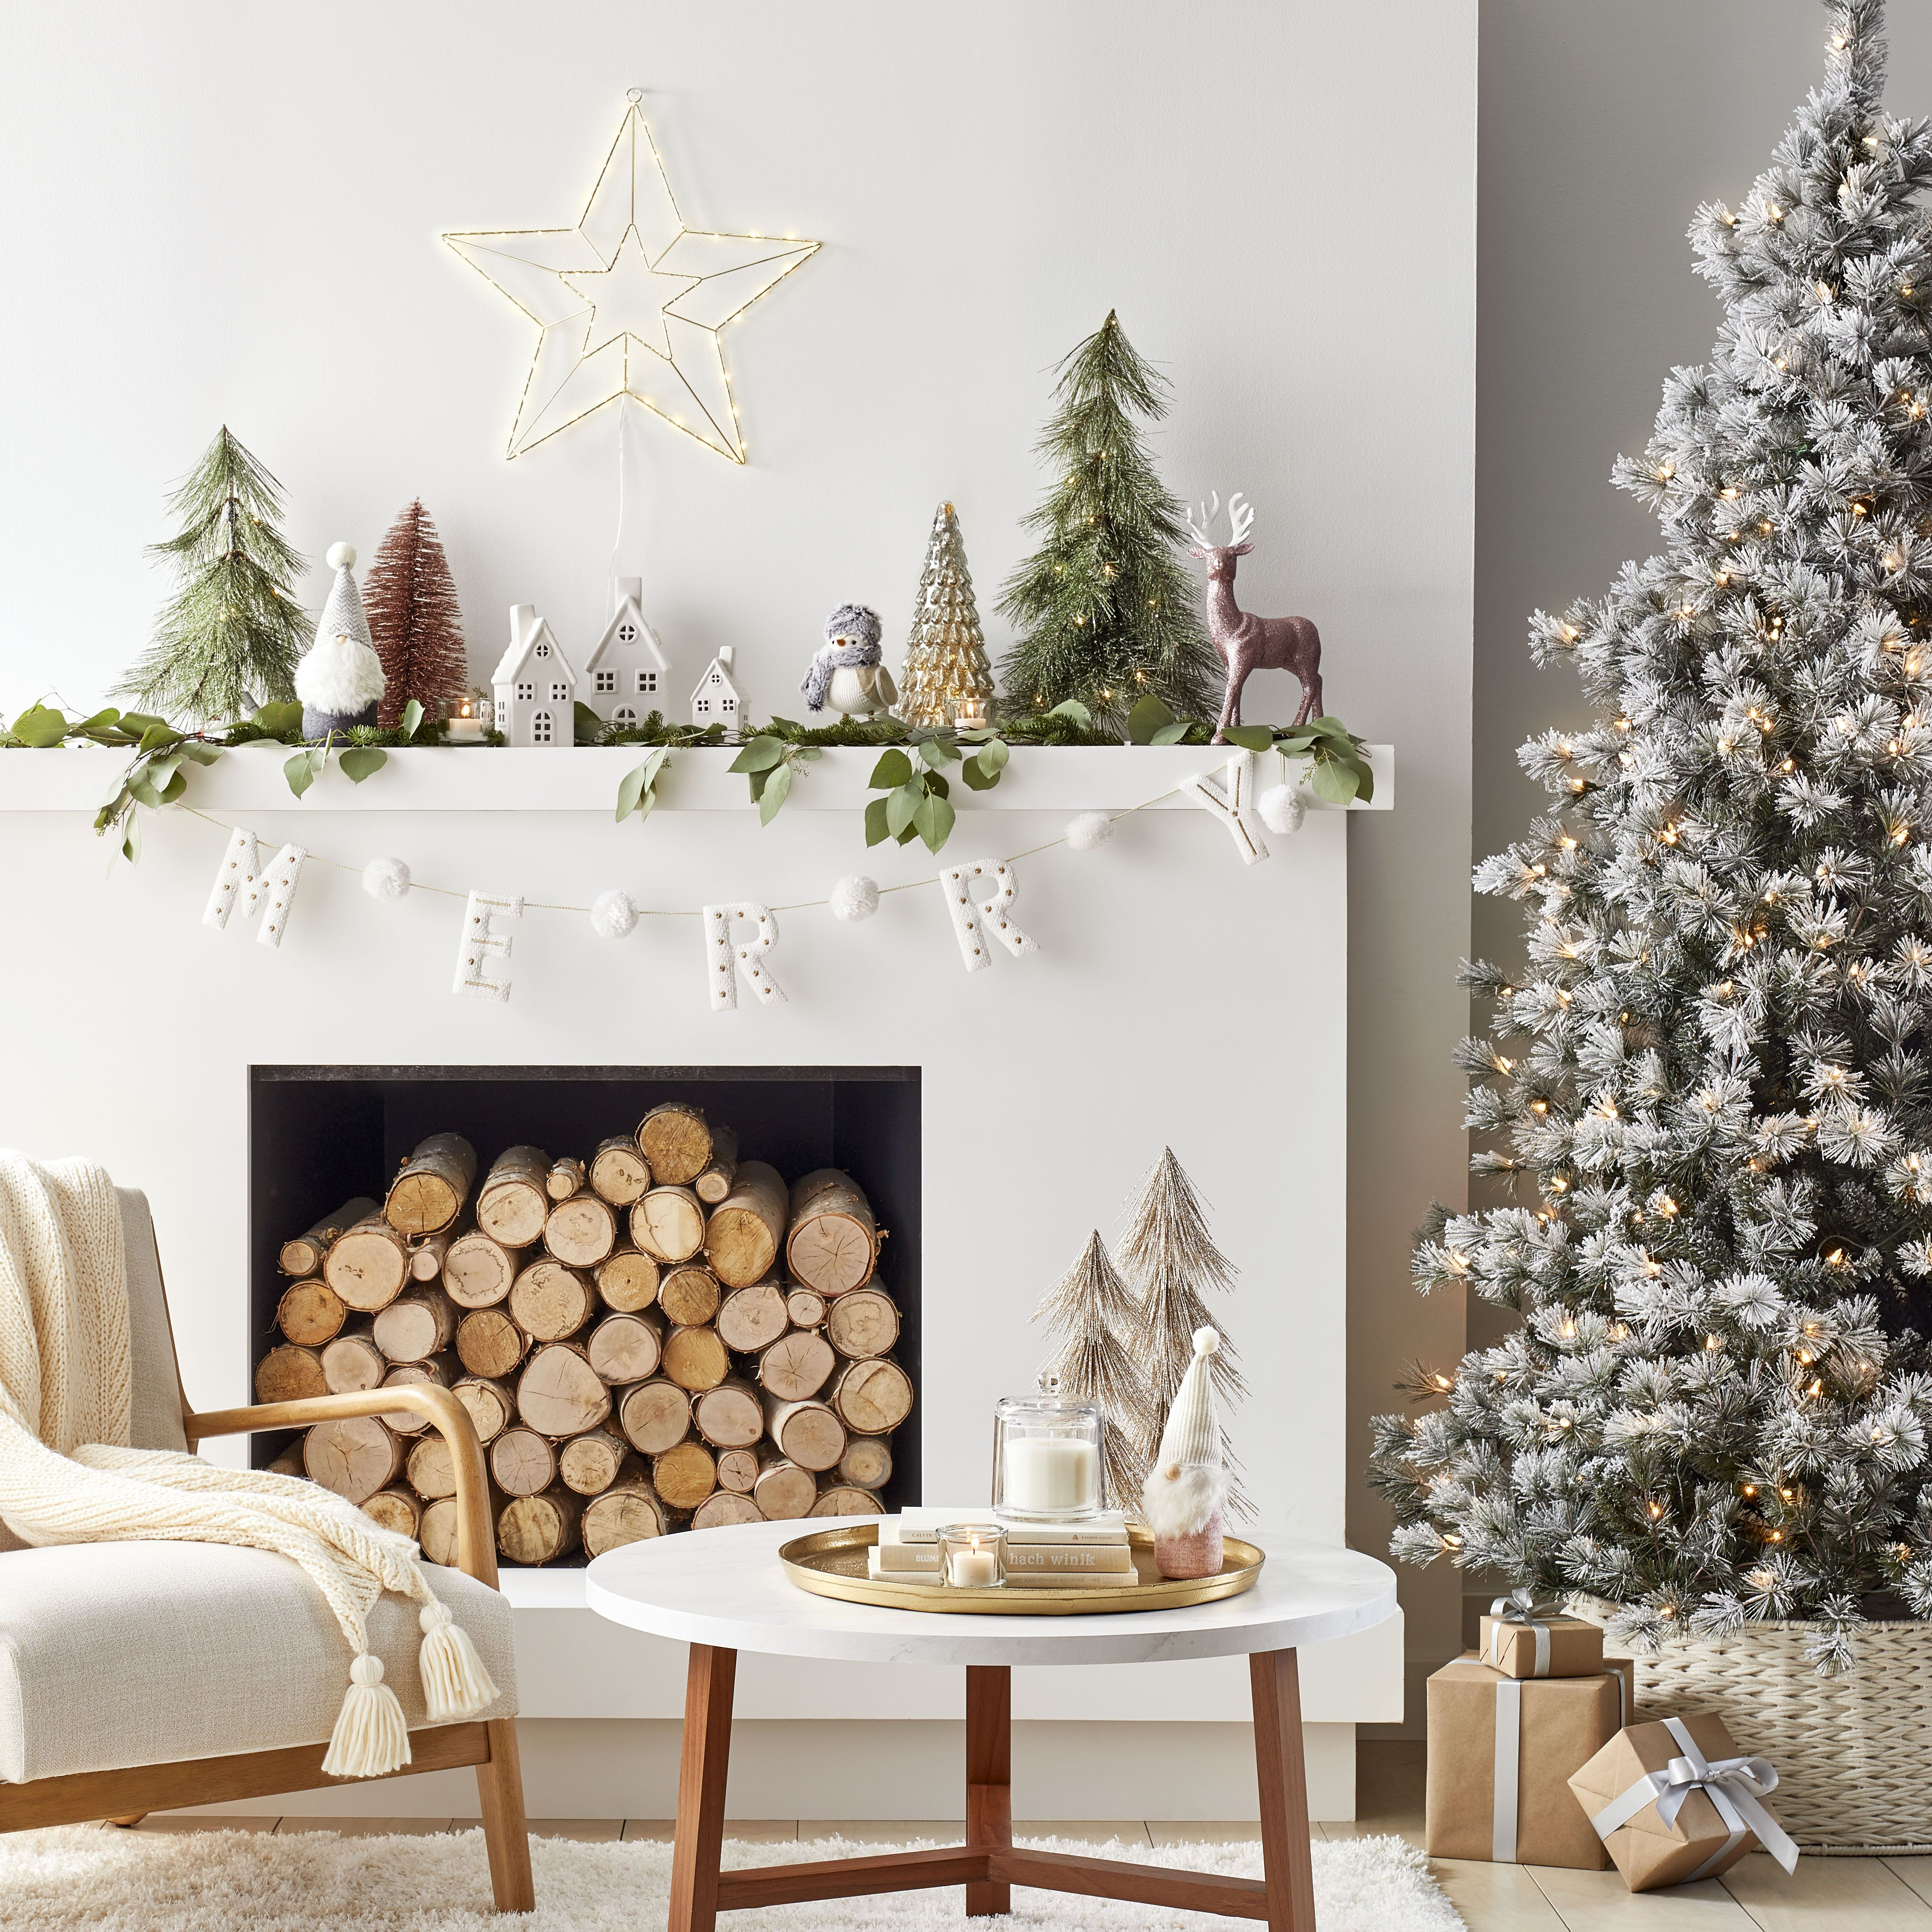 Target Home Holiday Collection Favorite Picks Sunset Indoor Christmas Decorations Holiday Decor Target Christmas Decor